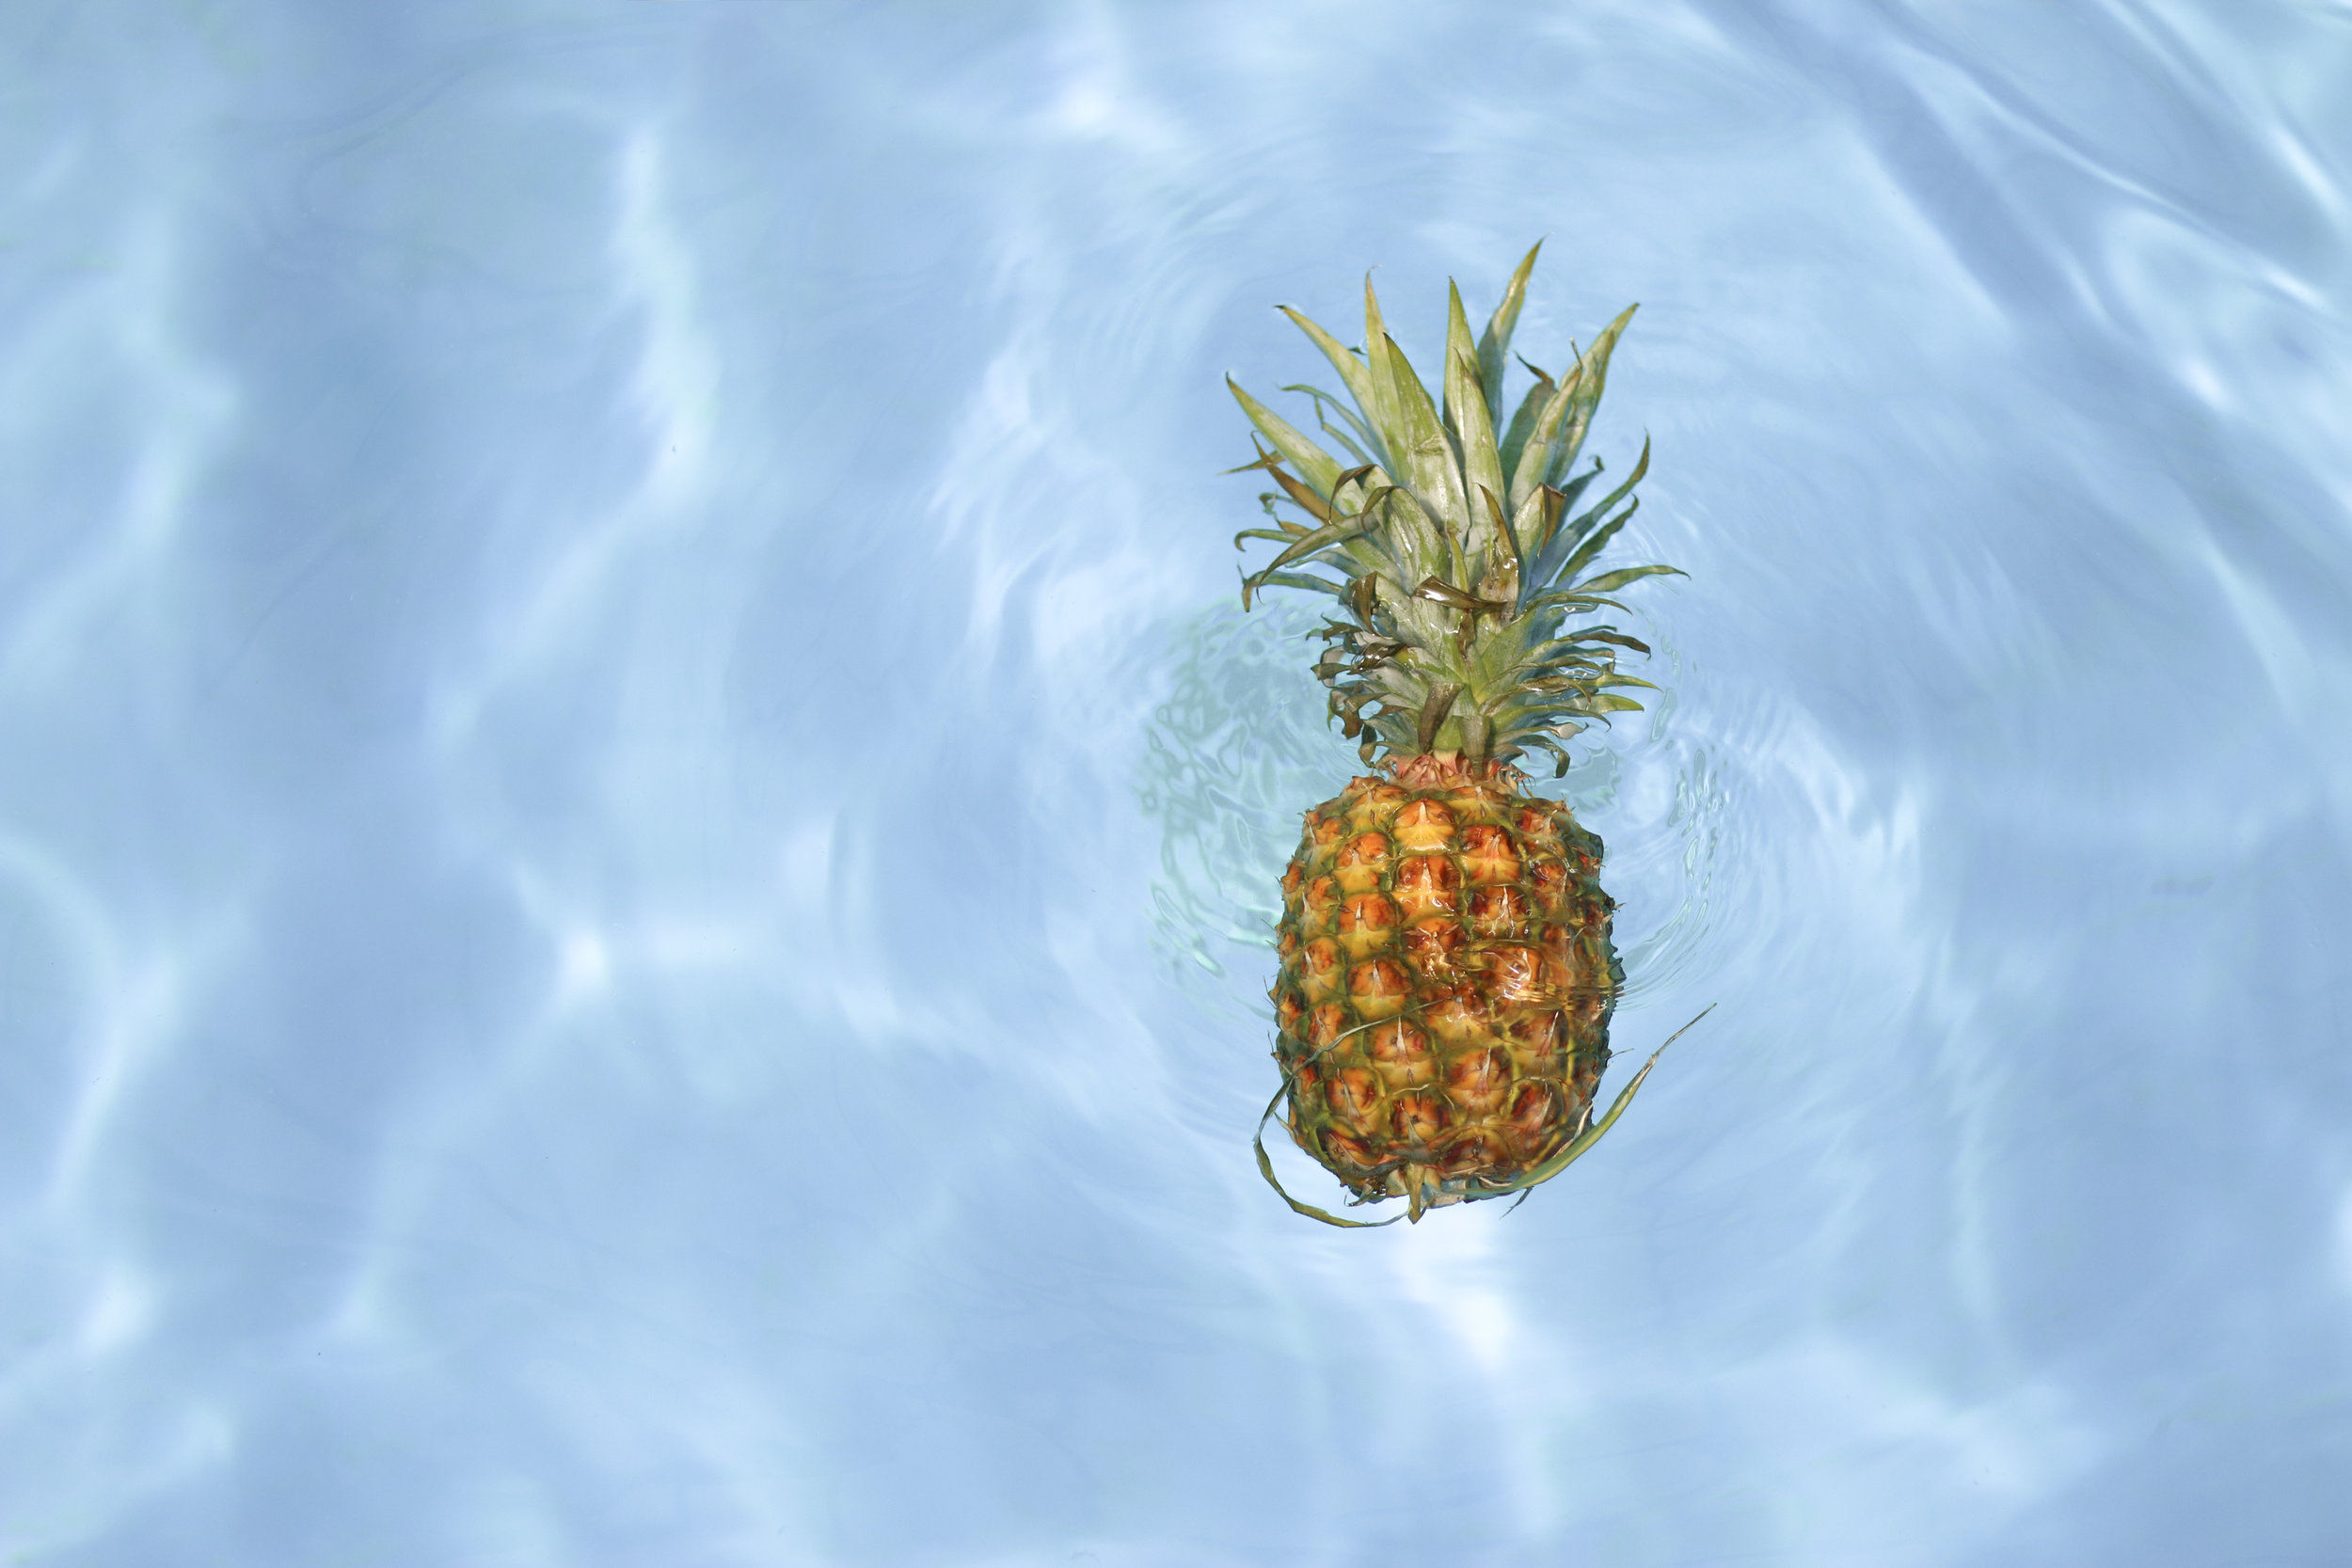 Floating pineapple. Symbol of welcoming.